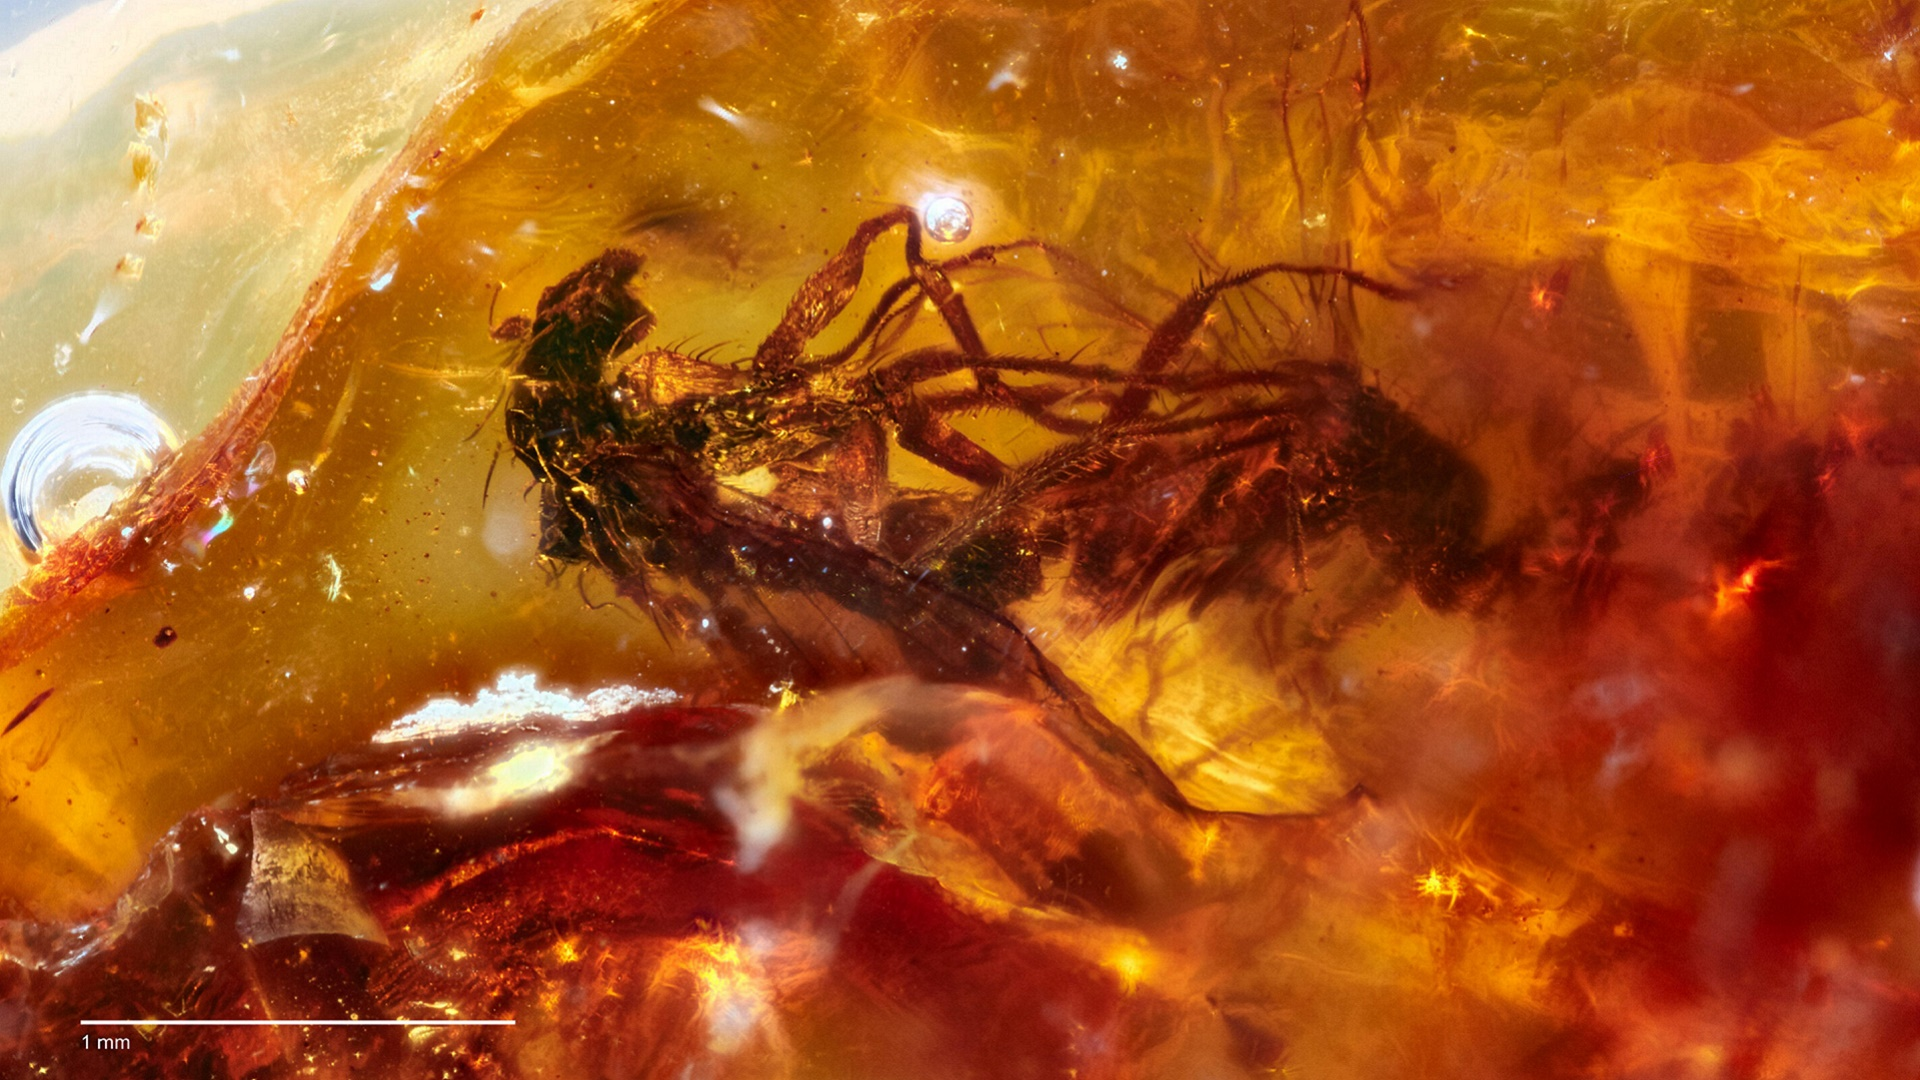 200408 prehistoric flies trapped in amber while rooting planet 2 fornicating flies credit jeffrey stilwell